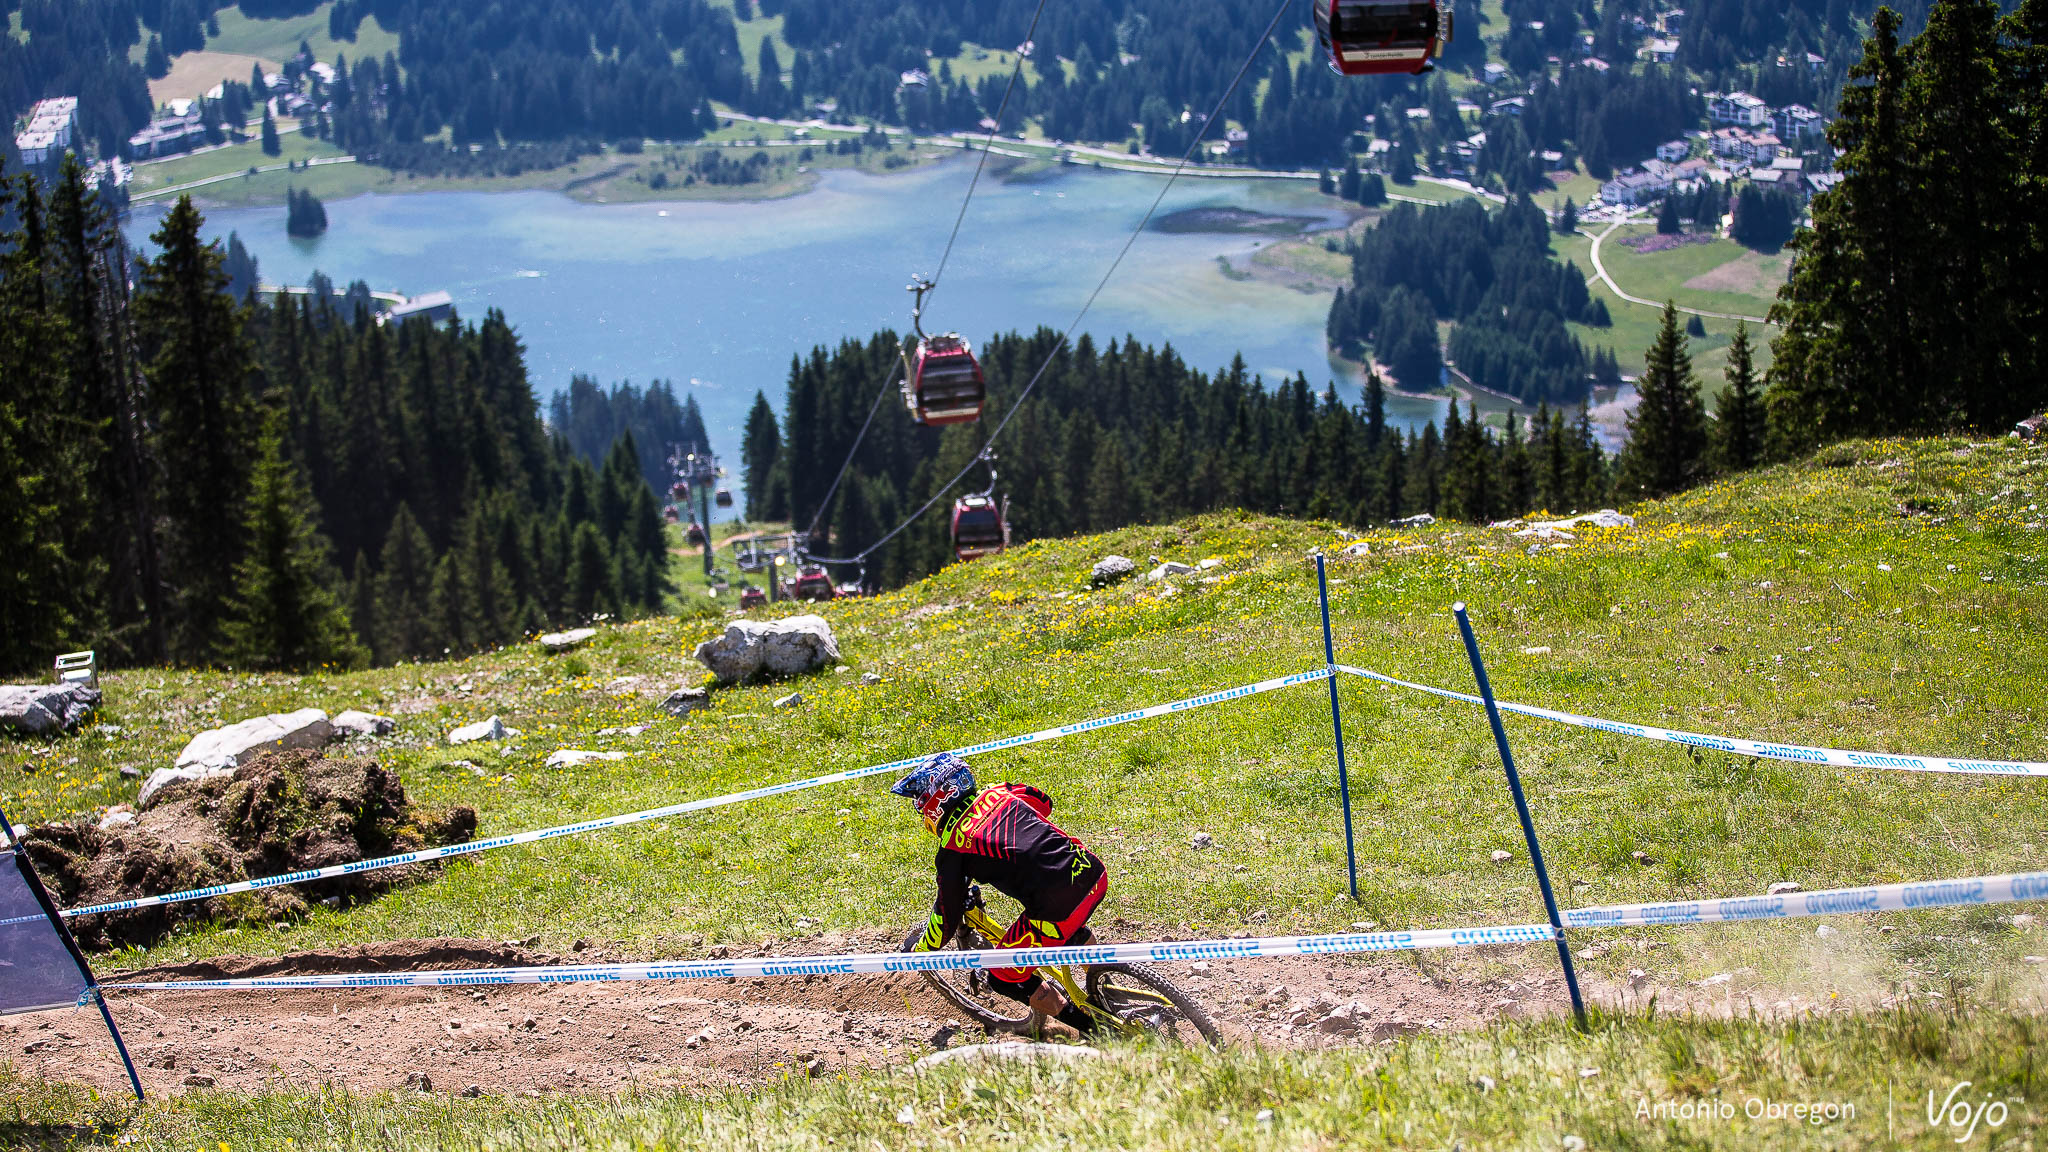 Lenzerheide_UCI_World_Cup_DH_2015_final_Porfoli_Elite_Copyright_Antonio_Obregon_VojoMag-20